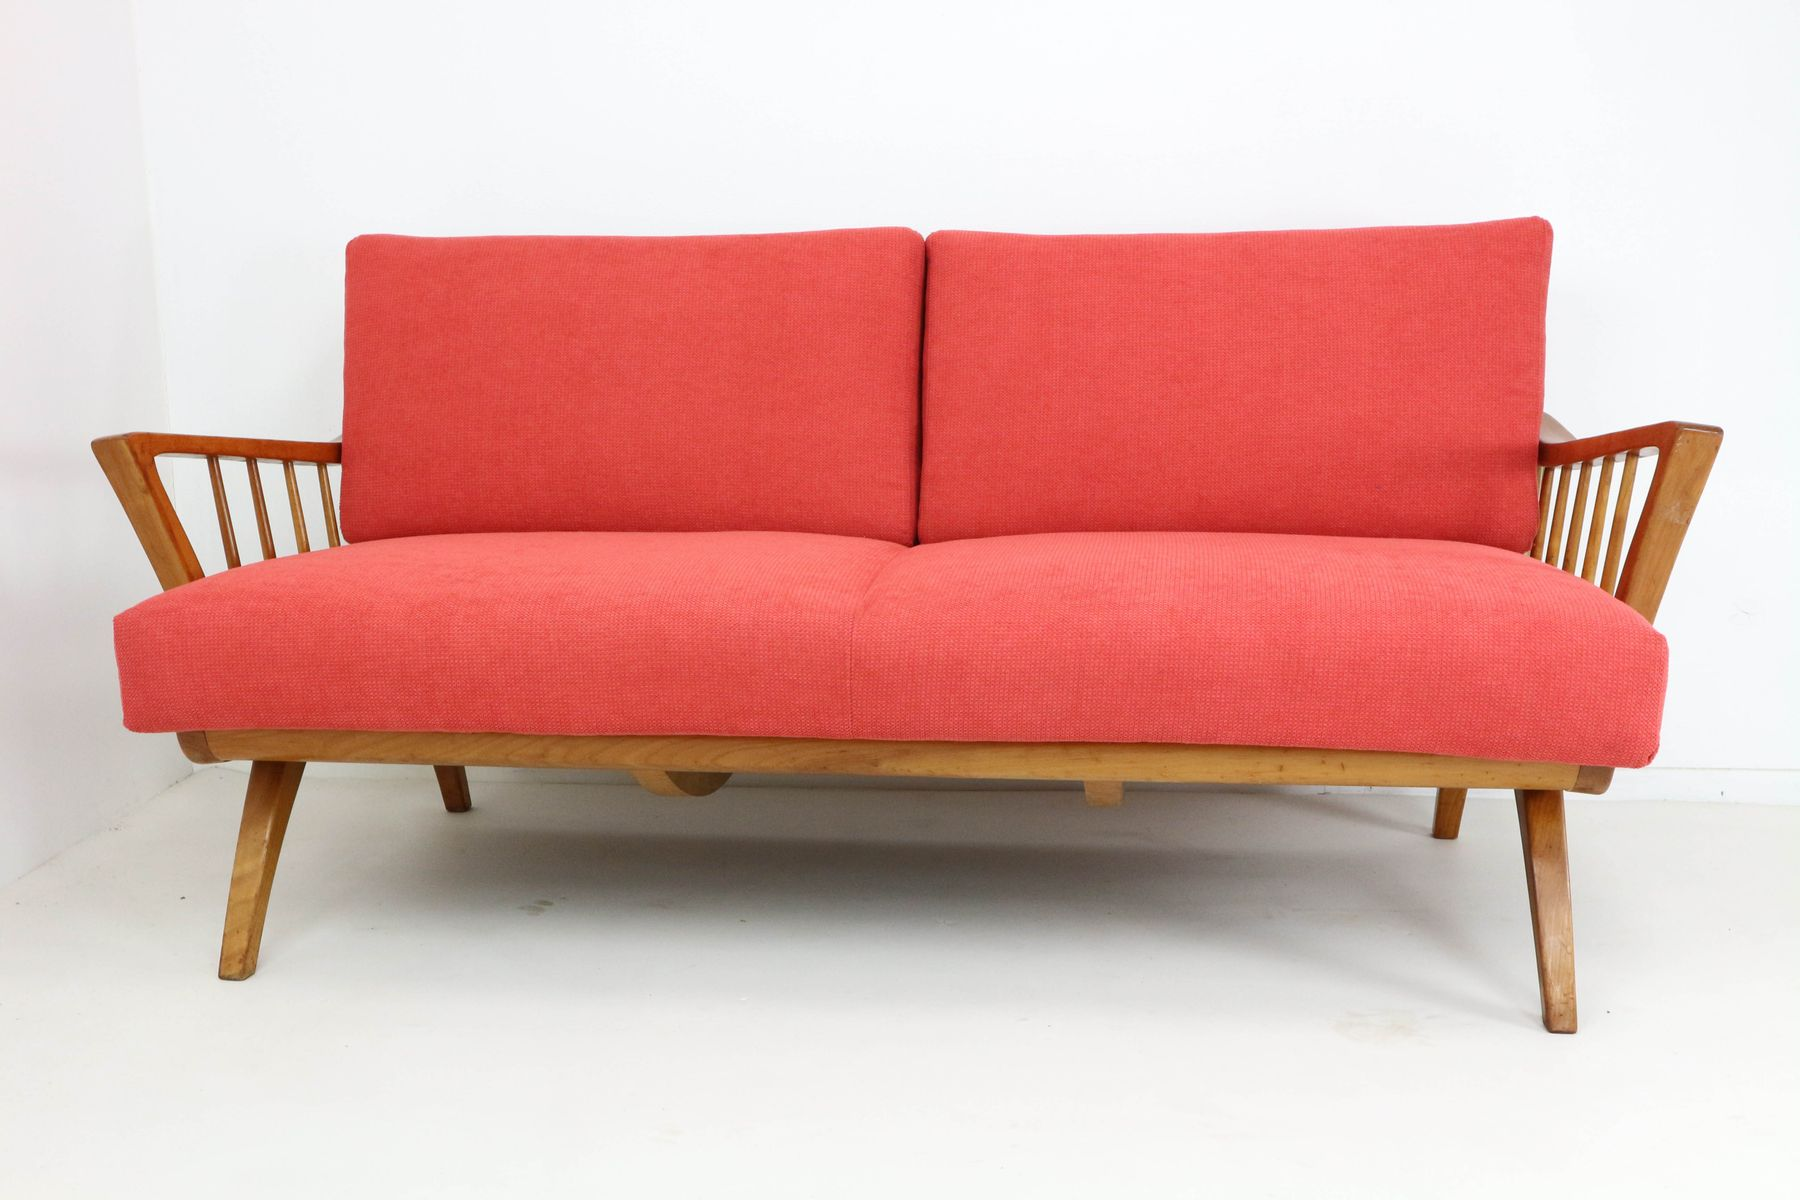 Antimott Sofa or Daybed from Walter Knoll 1950s for sale at Pamono